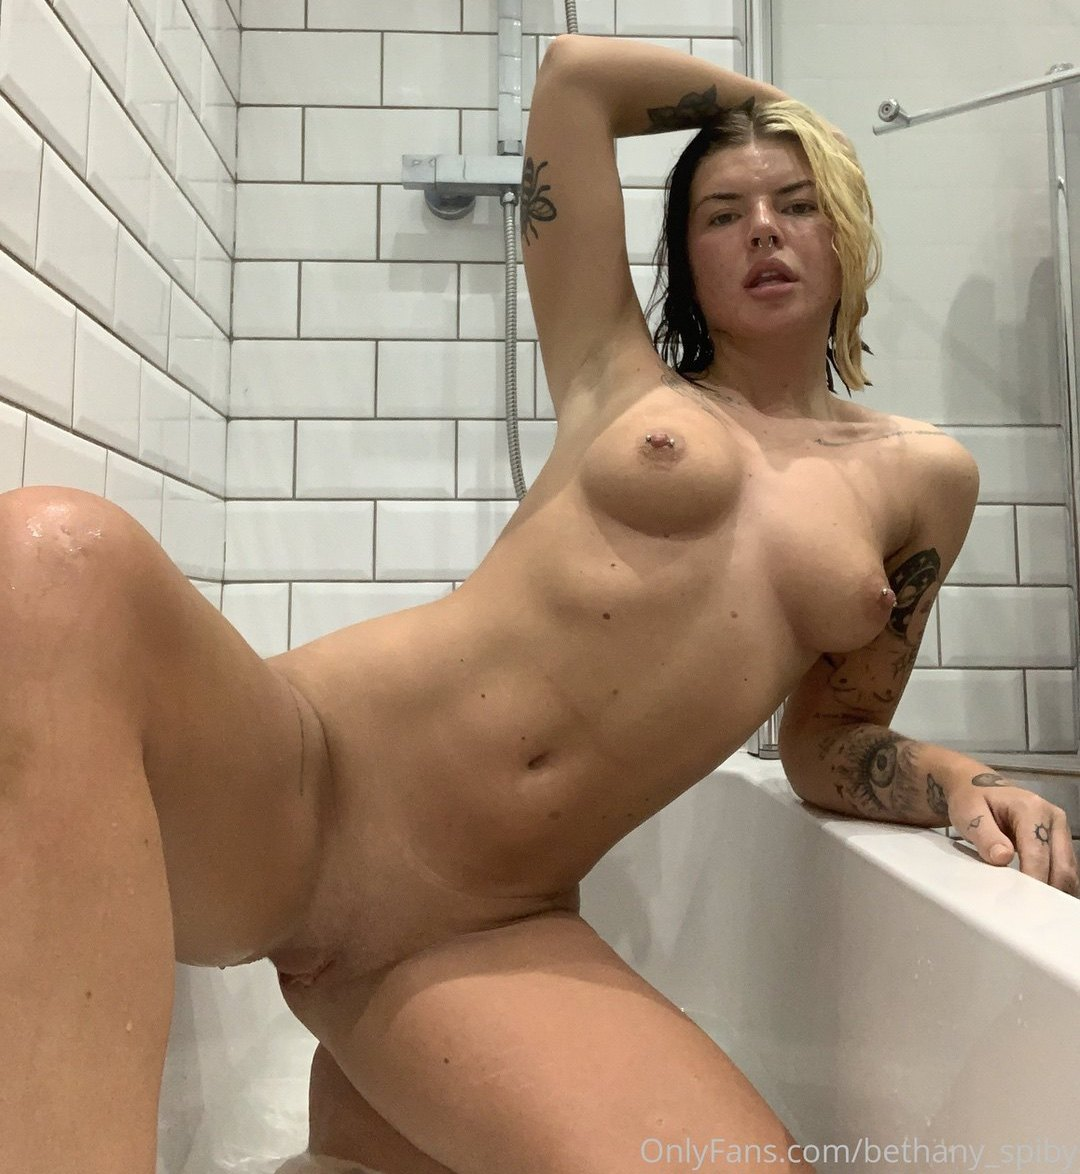 Bethany Spiby Bethany Spiby Onlyfans Nudes Leaks 0012